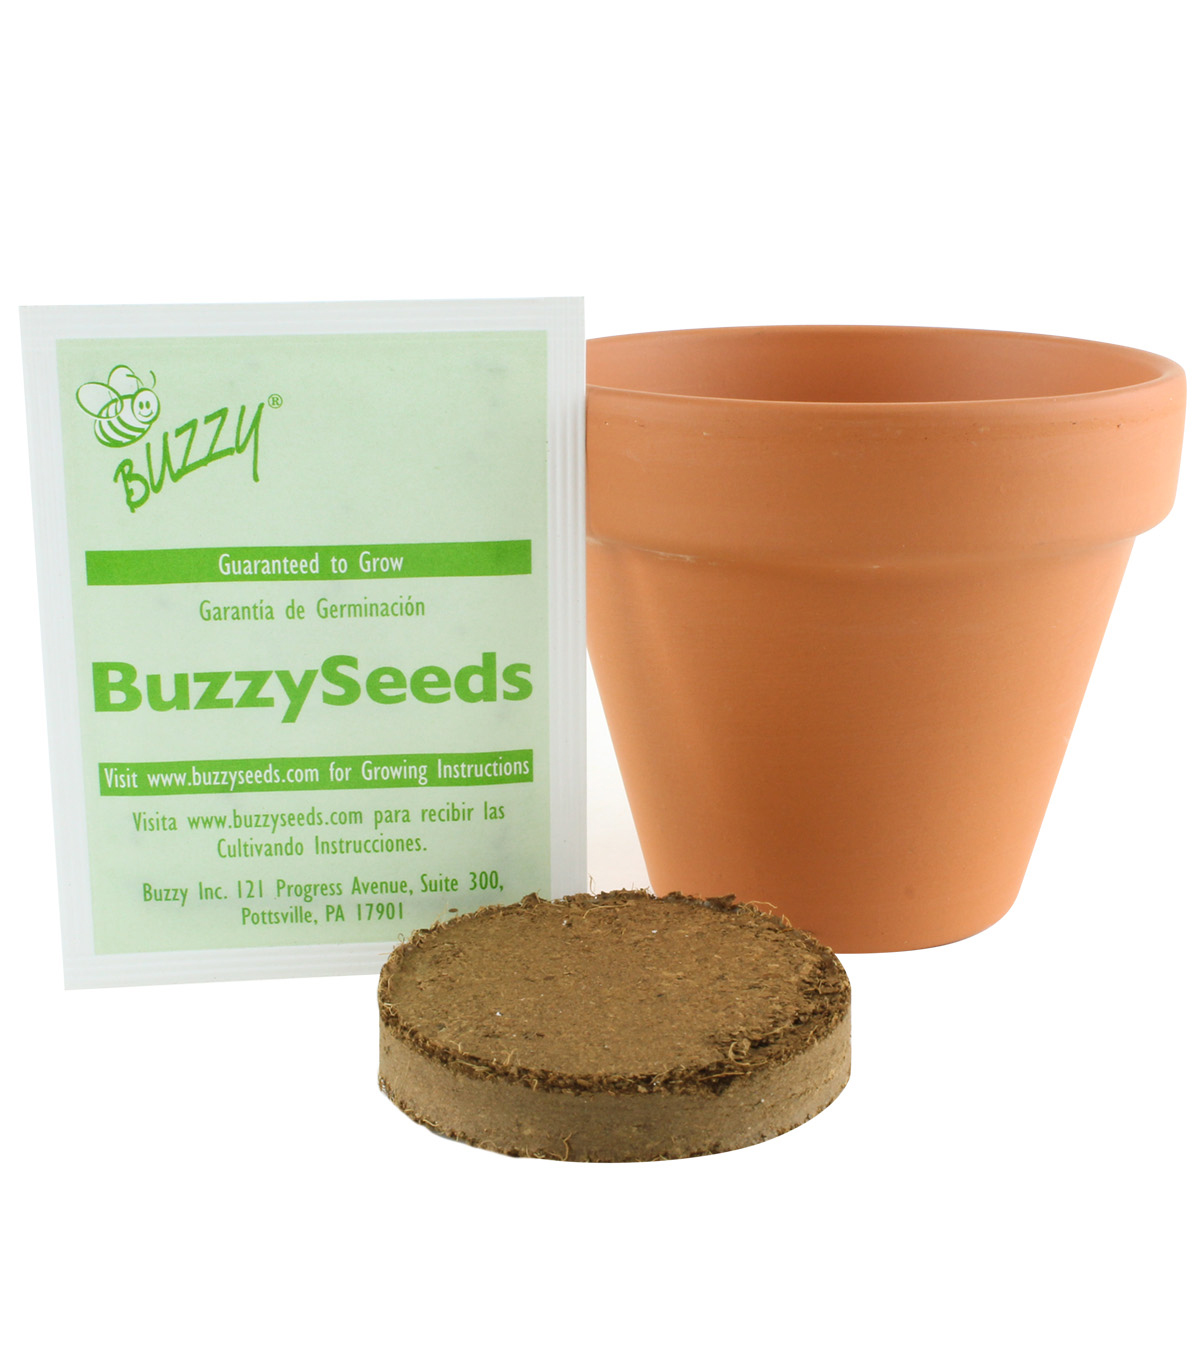 Buzzy Organic Chives Seeds DIY Growing Kit with Terracotta Pot